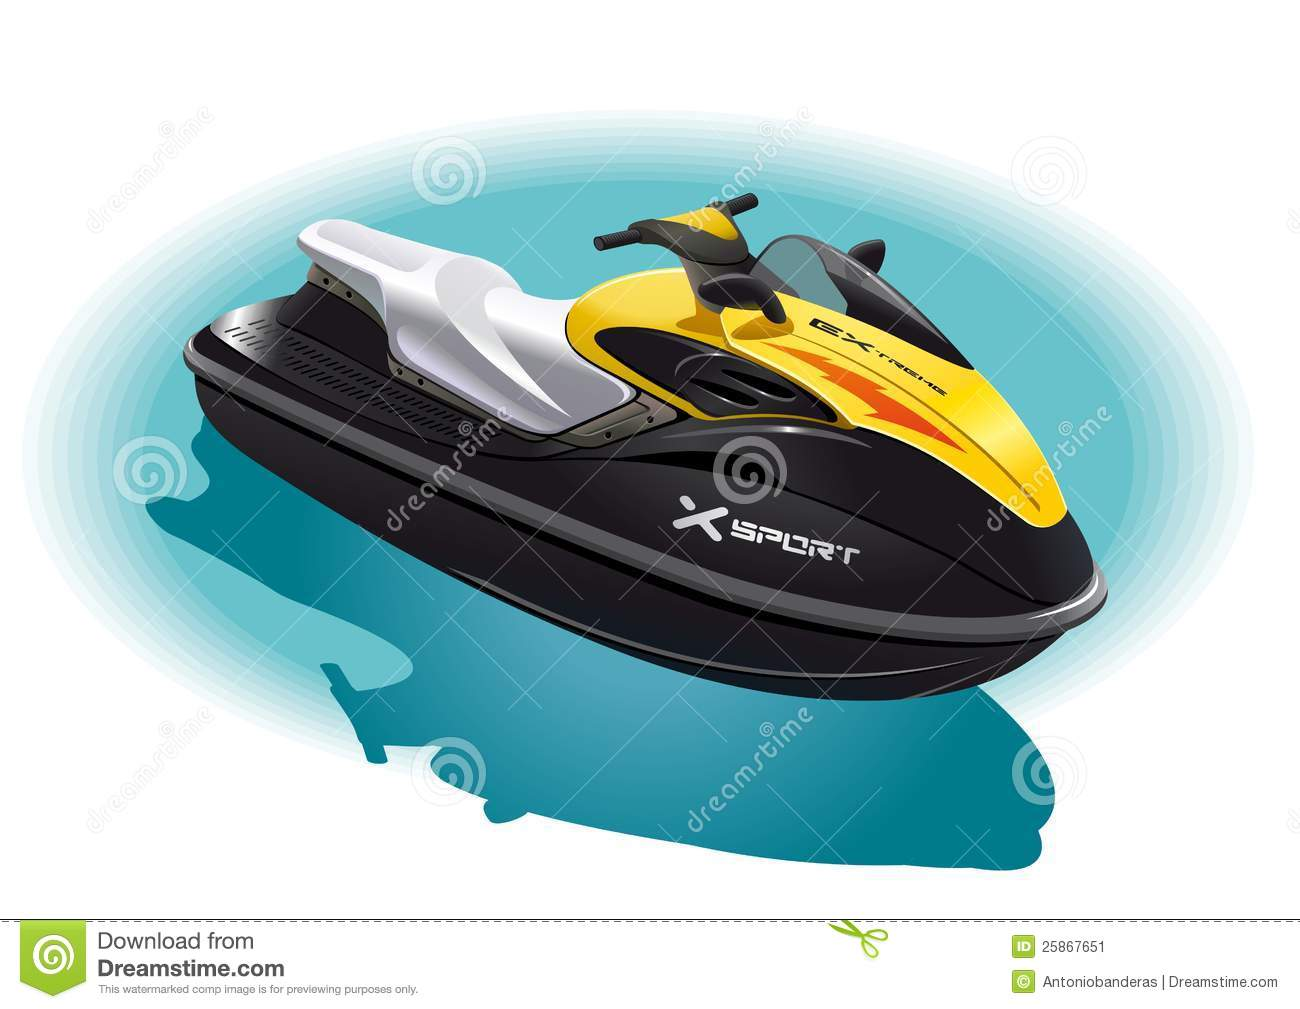 Illustration of the water bike for an unforgettable ride on the sea.